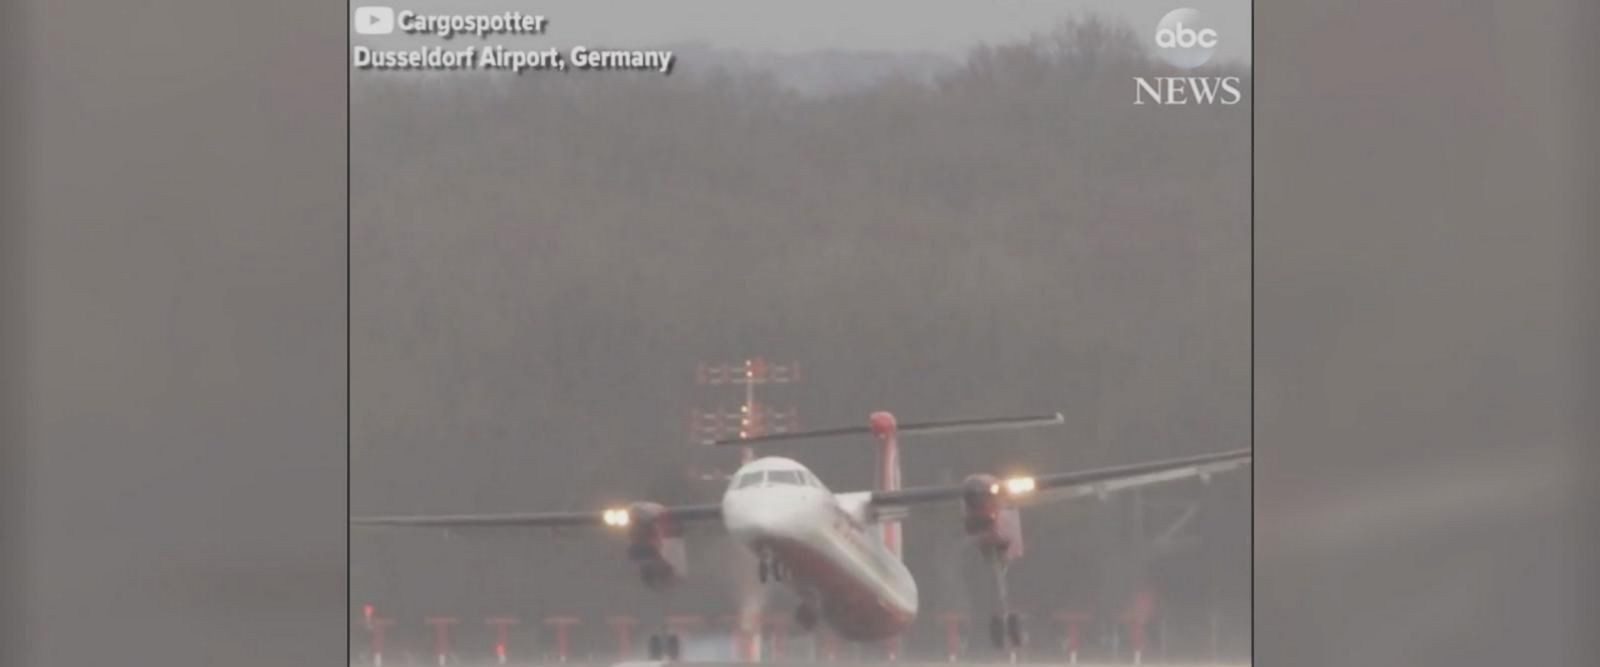 Severe storms rolled into Dusseldorf, Germany, causing airline pilots to have to make some difficult landings.